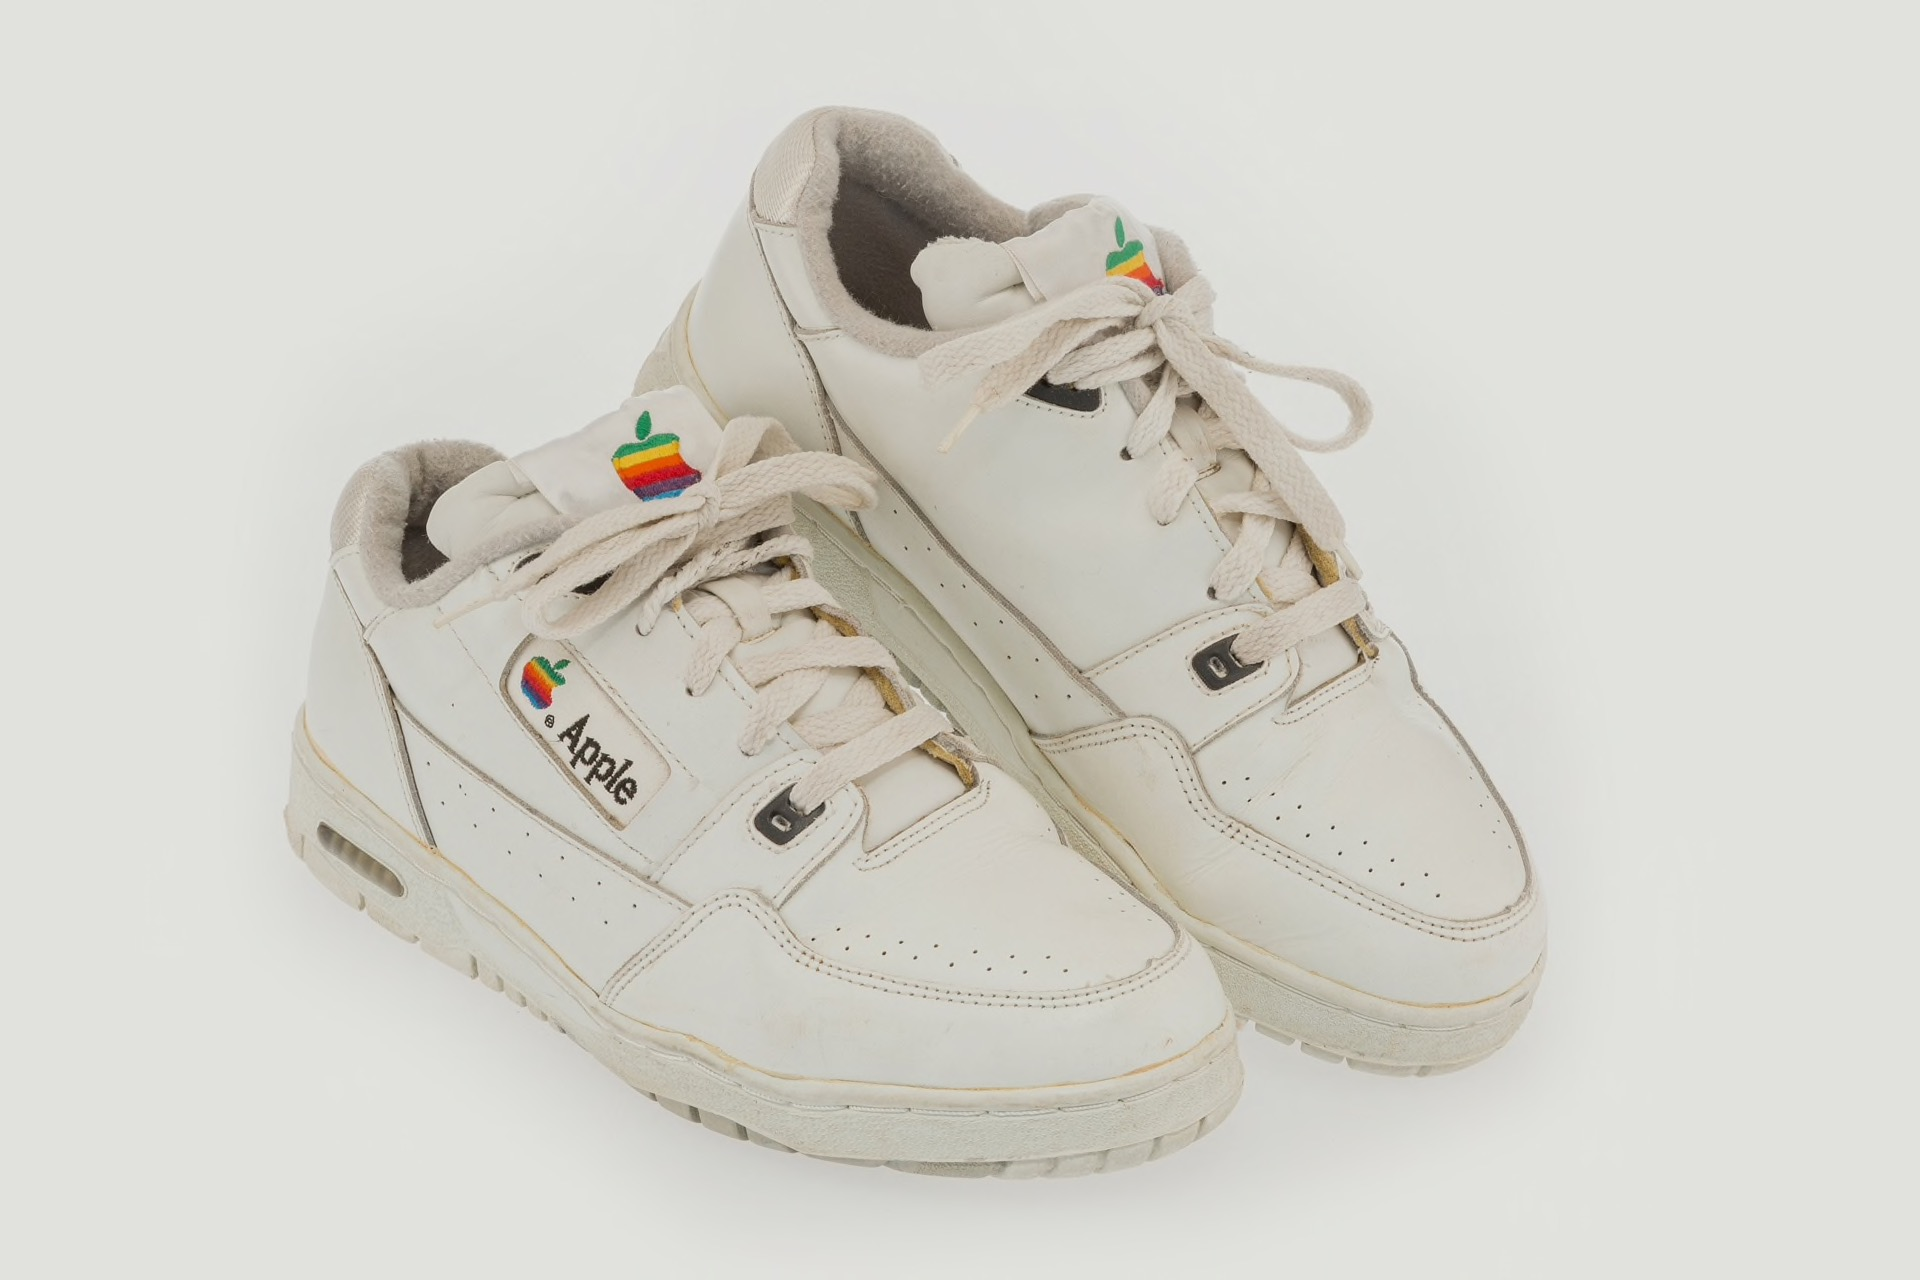 photo of Rare Apple Sneakers Fetch Over $16,000 at Auction image